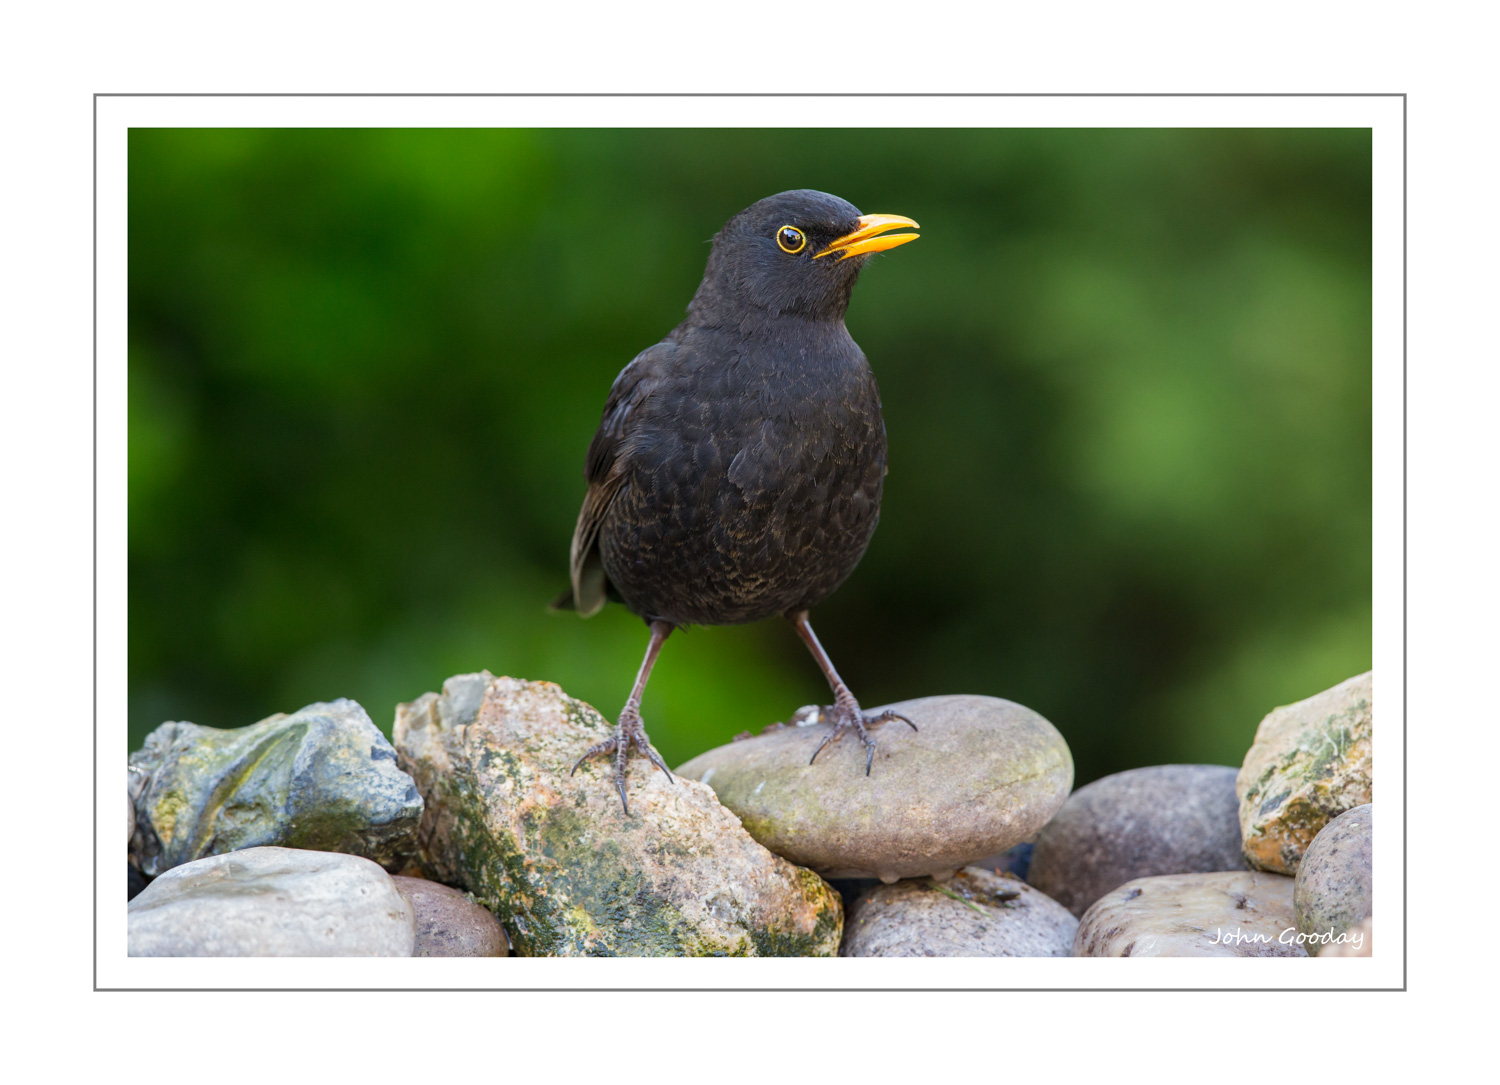 (Image: Male Blackbird standing on pebbles at the far end of the tray.Canon EOS 5D Mark III, EF500mm f/4L IS II, 1/160 sec @ f/7.1, ISO 1600, tripod, hide)